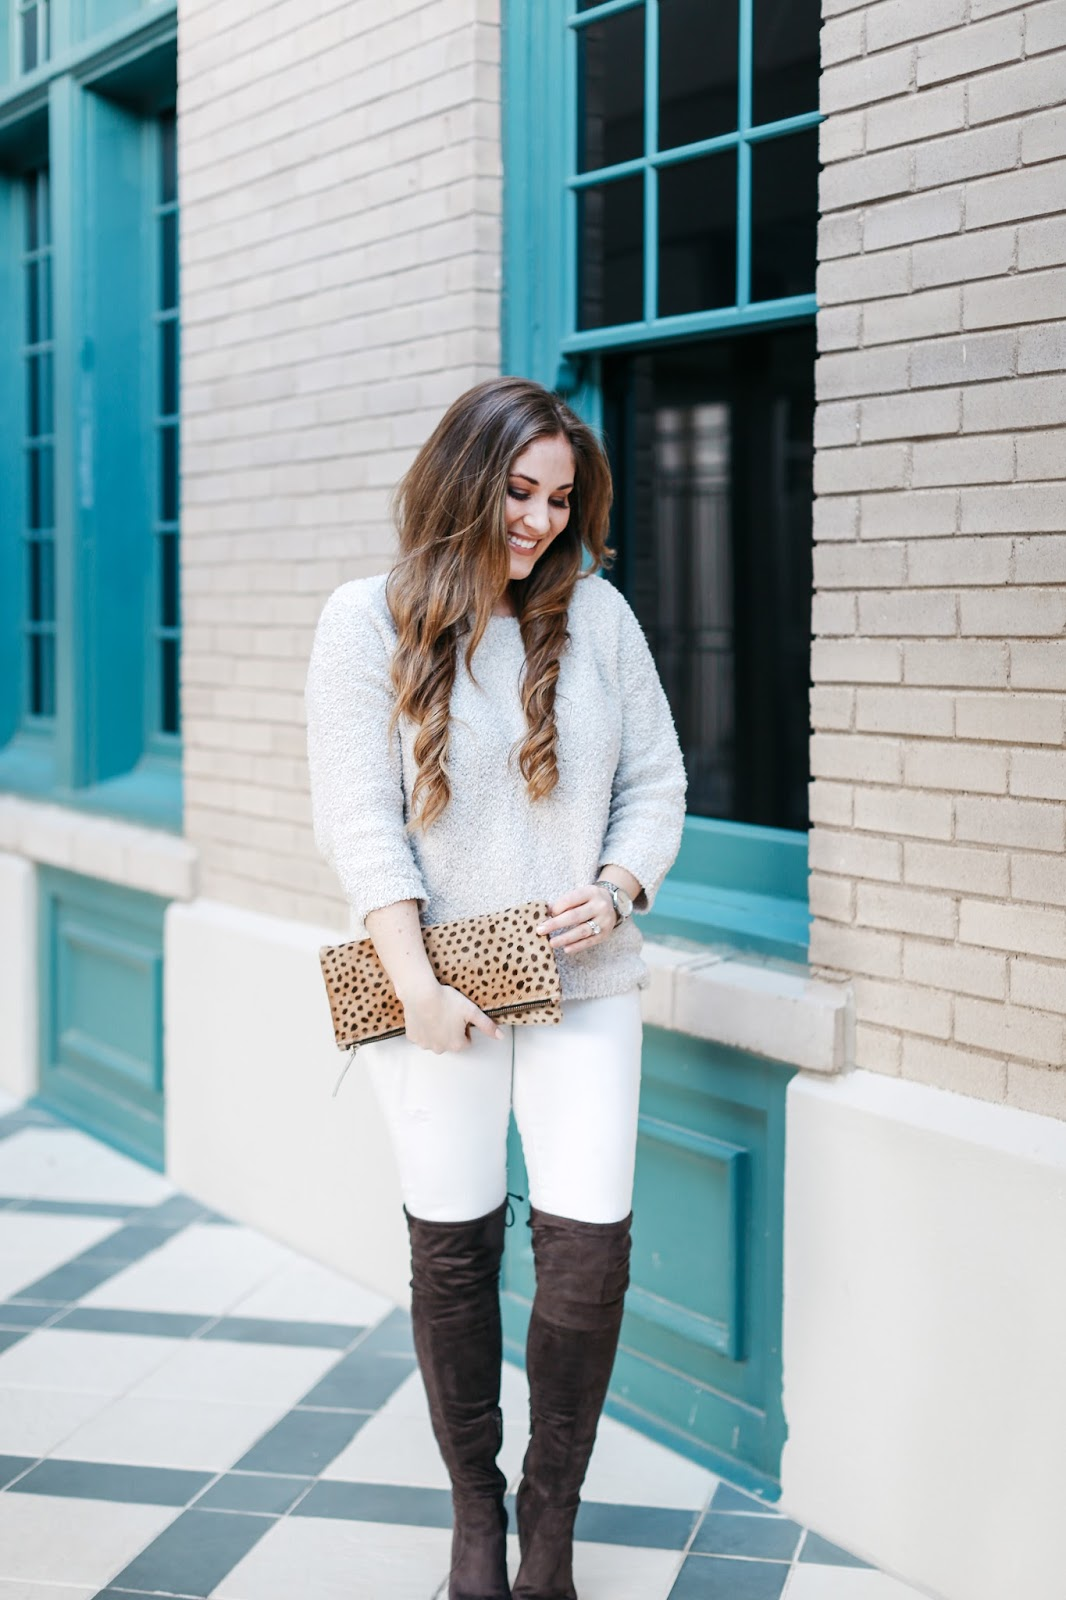 3 ways to wear winter white jeans